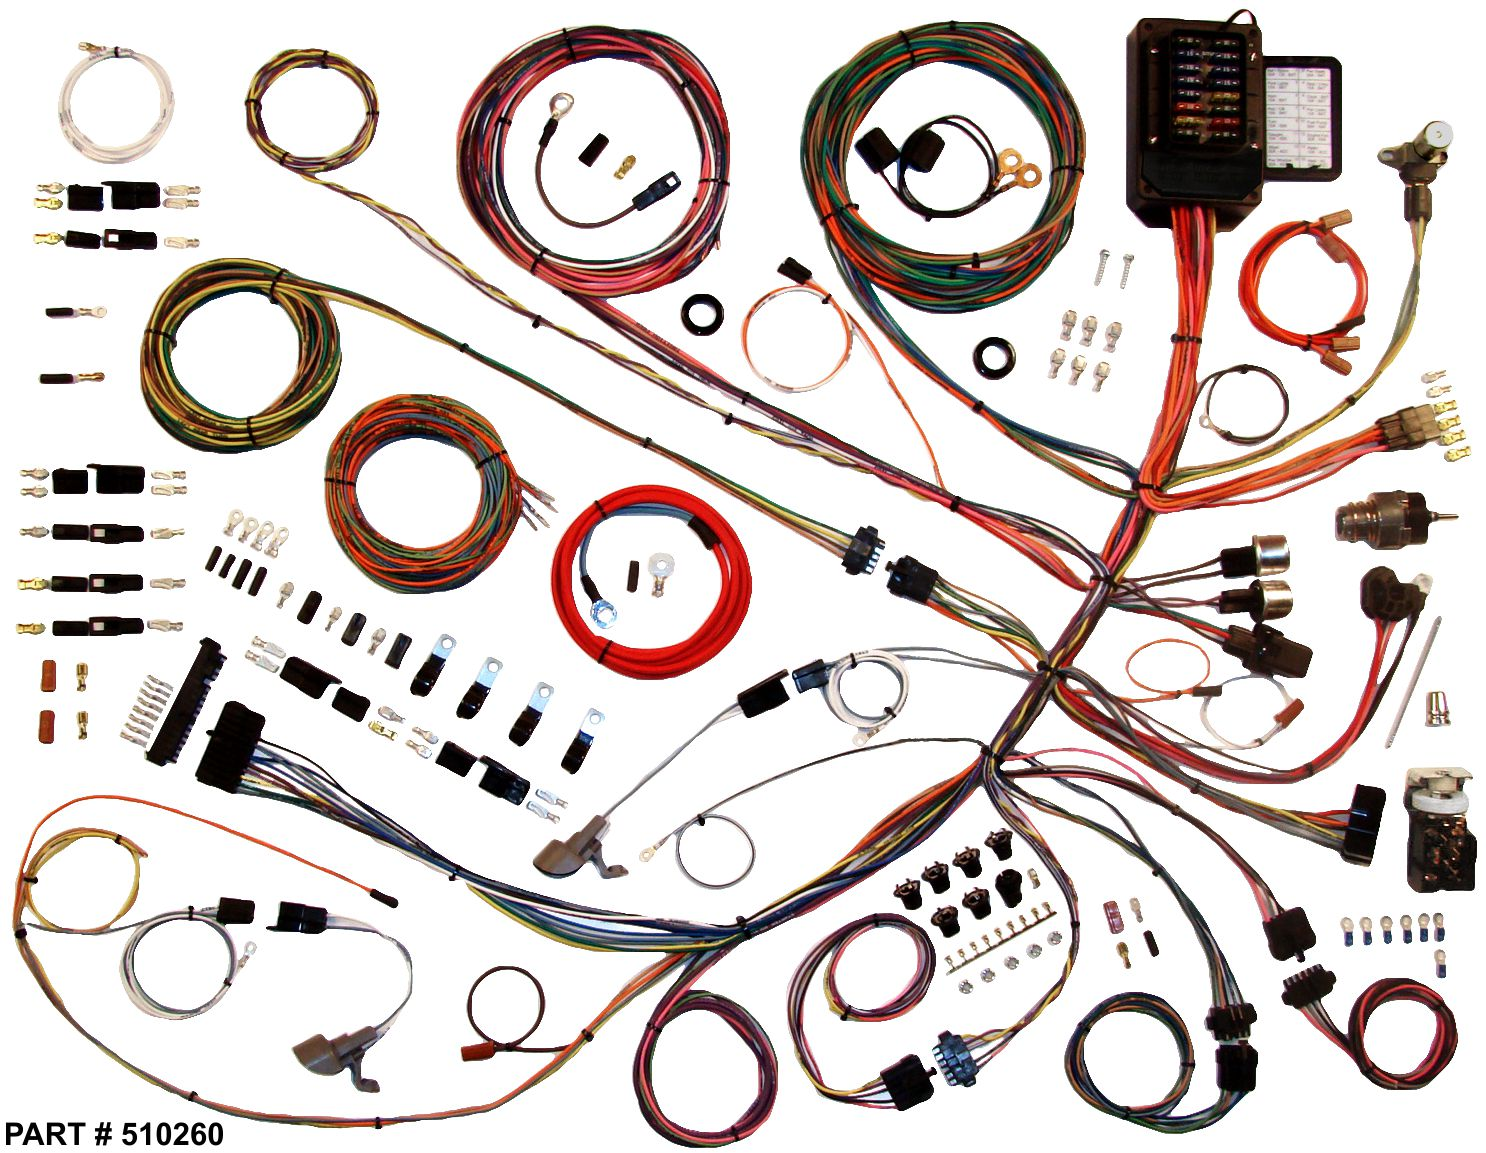 [DIAGRAM_0HG]  1961 - 1966 Ford Trucks RestoMod Wiring System | 1966 Ford Truck Fuse Box |  | Lectric Limited